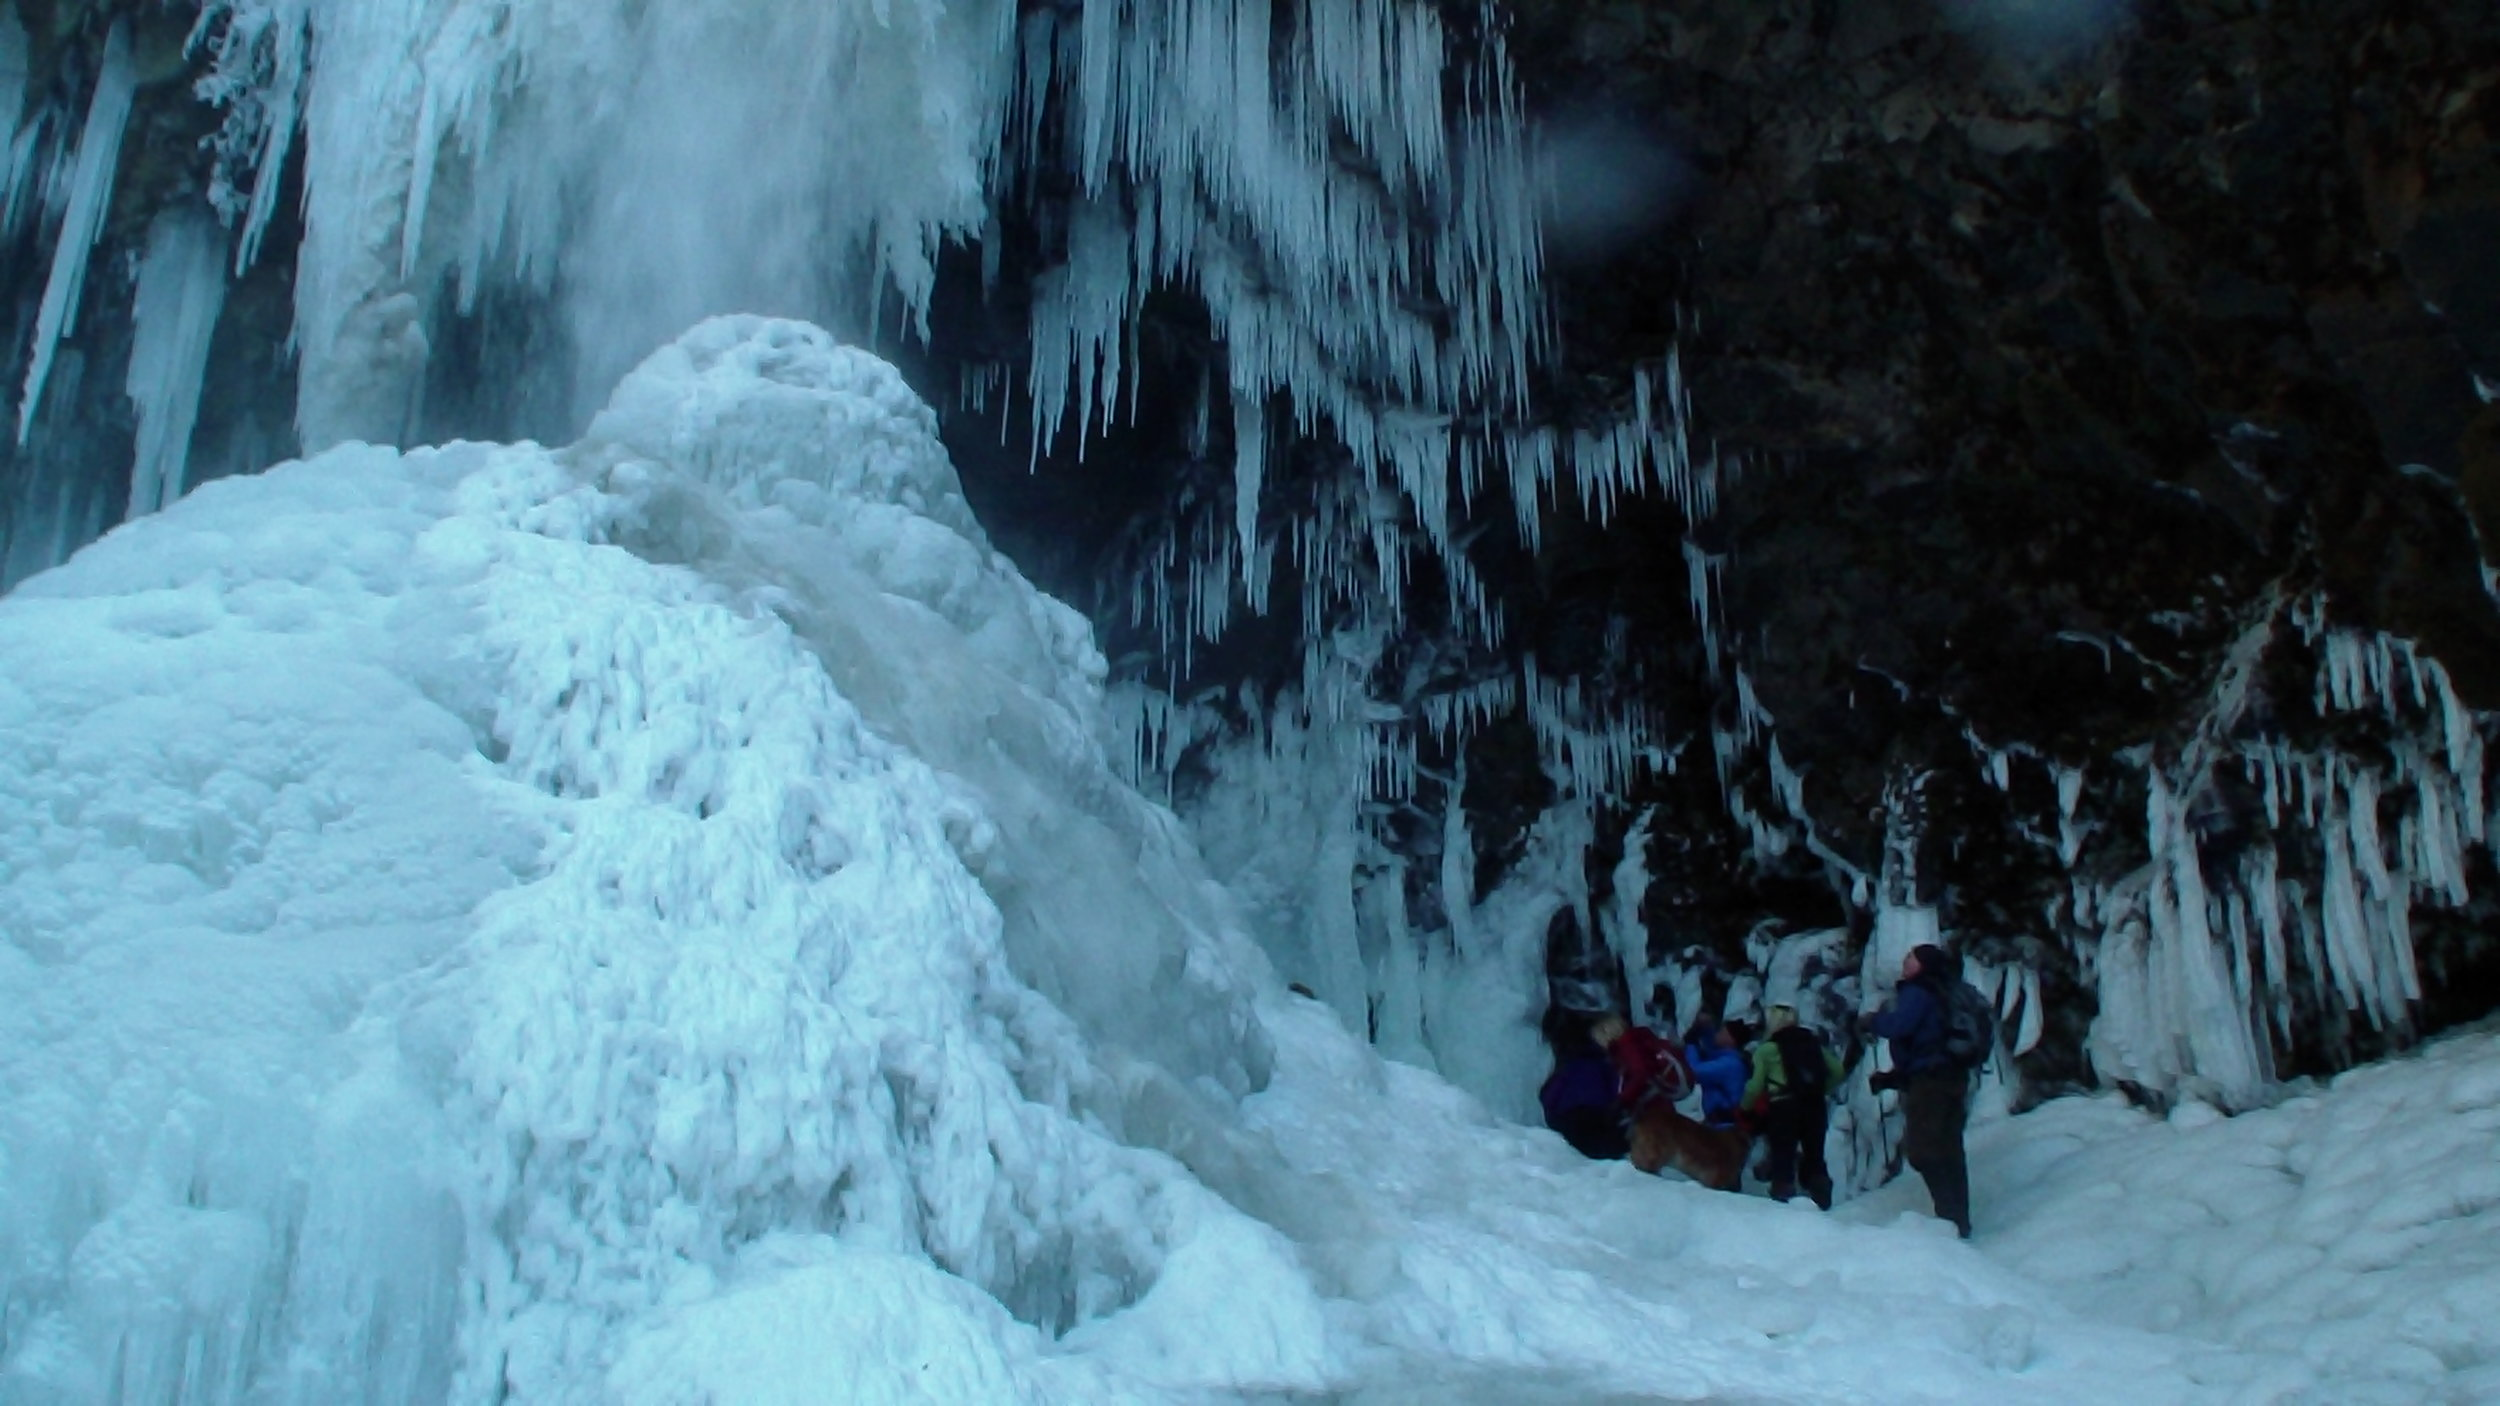 The group gathered for photos at the base of the falls.